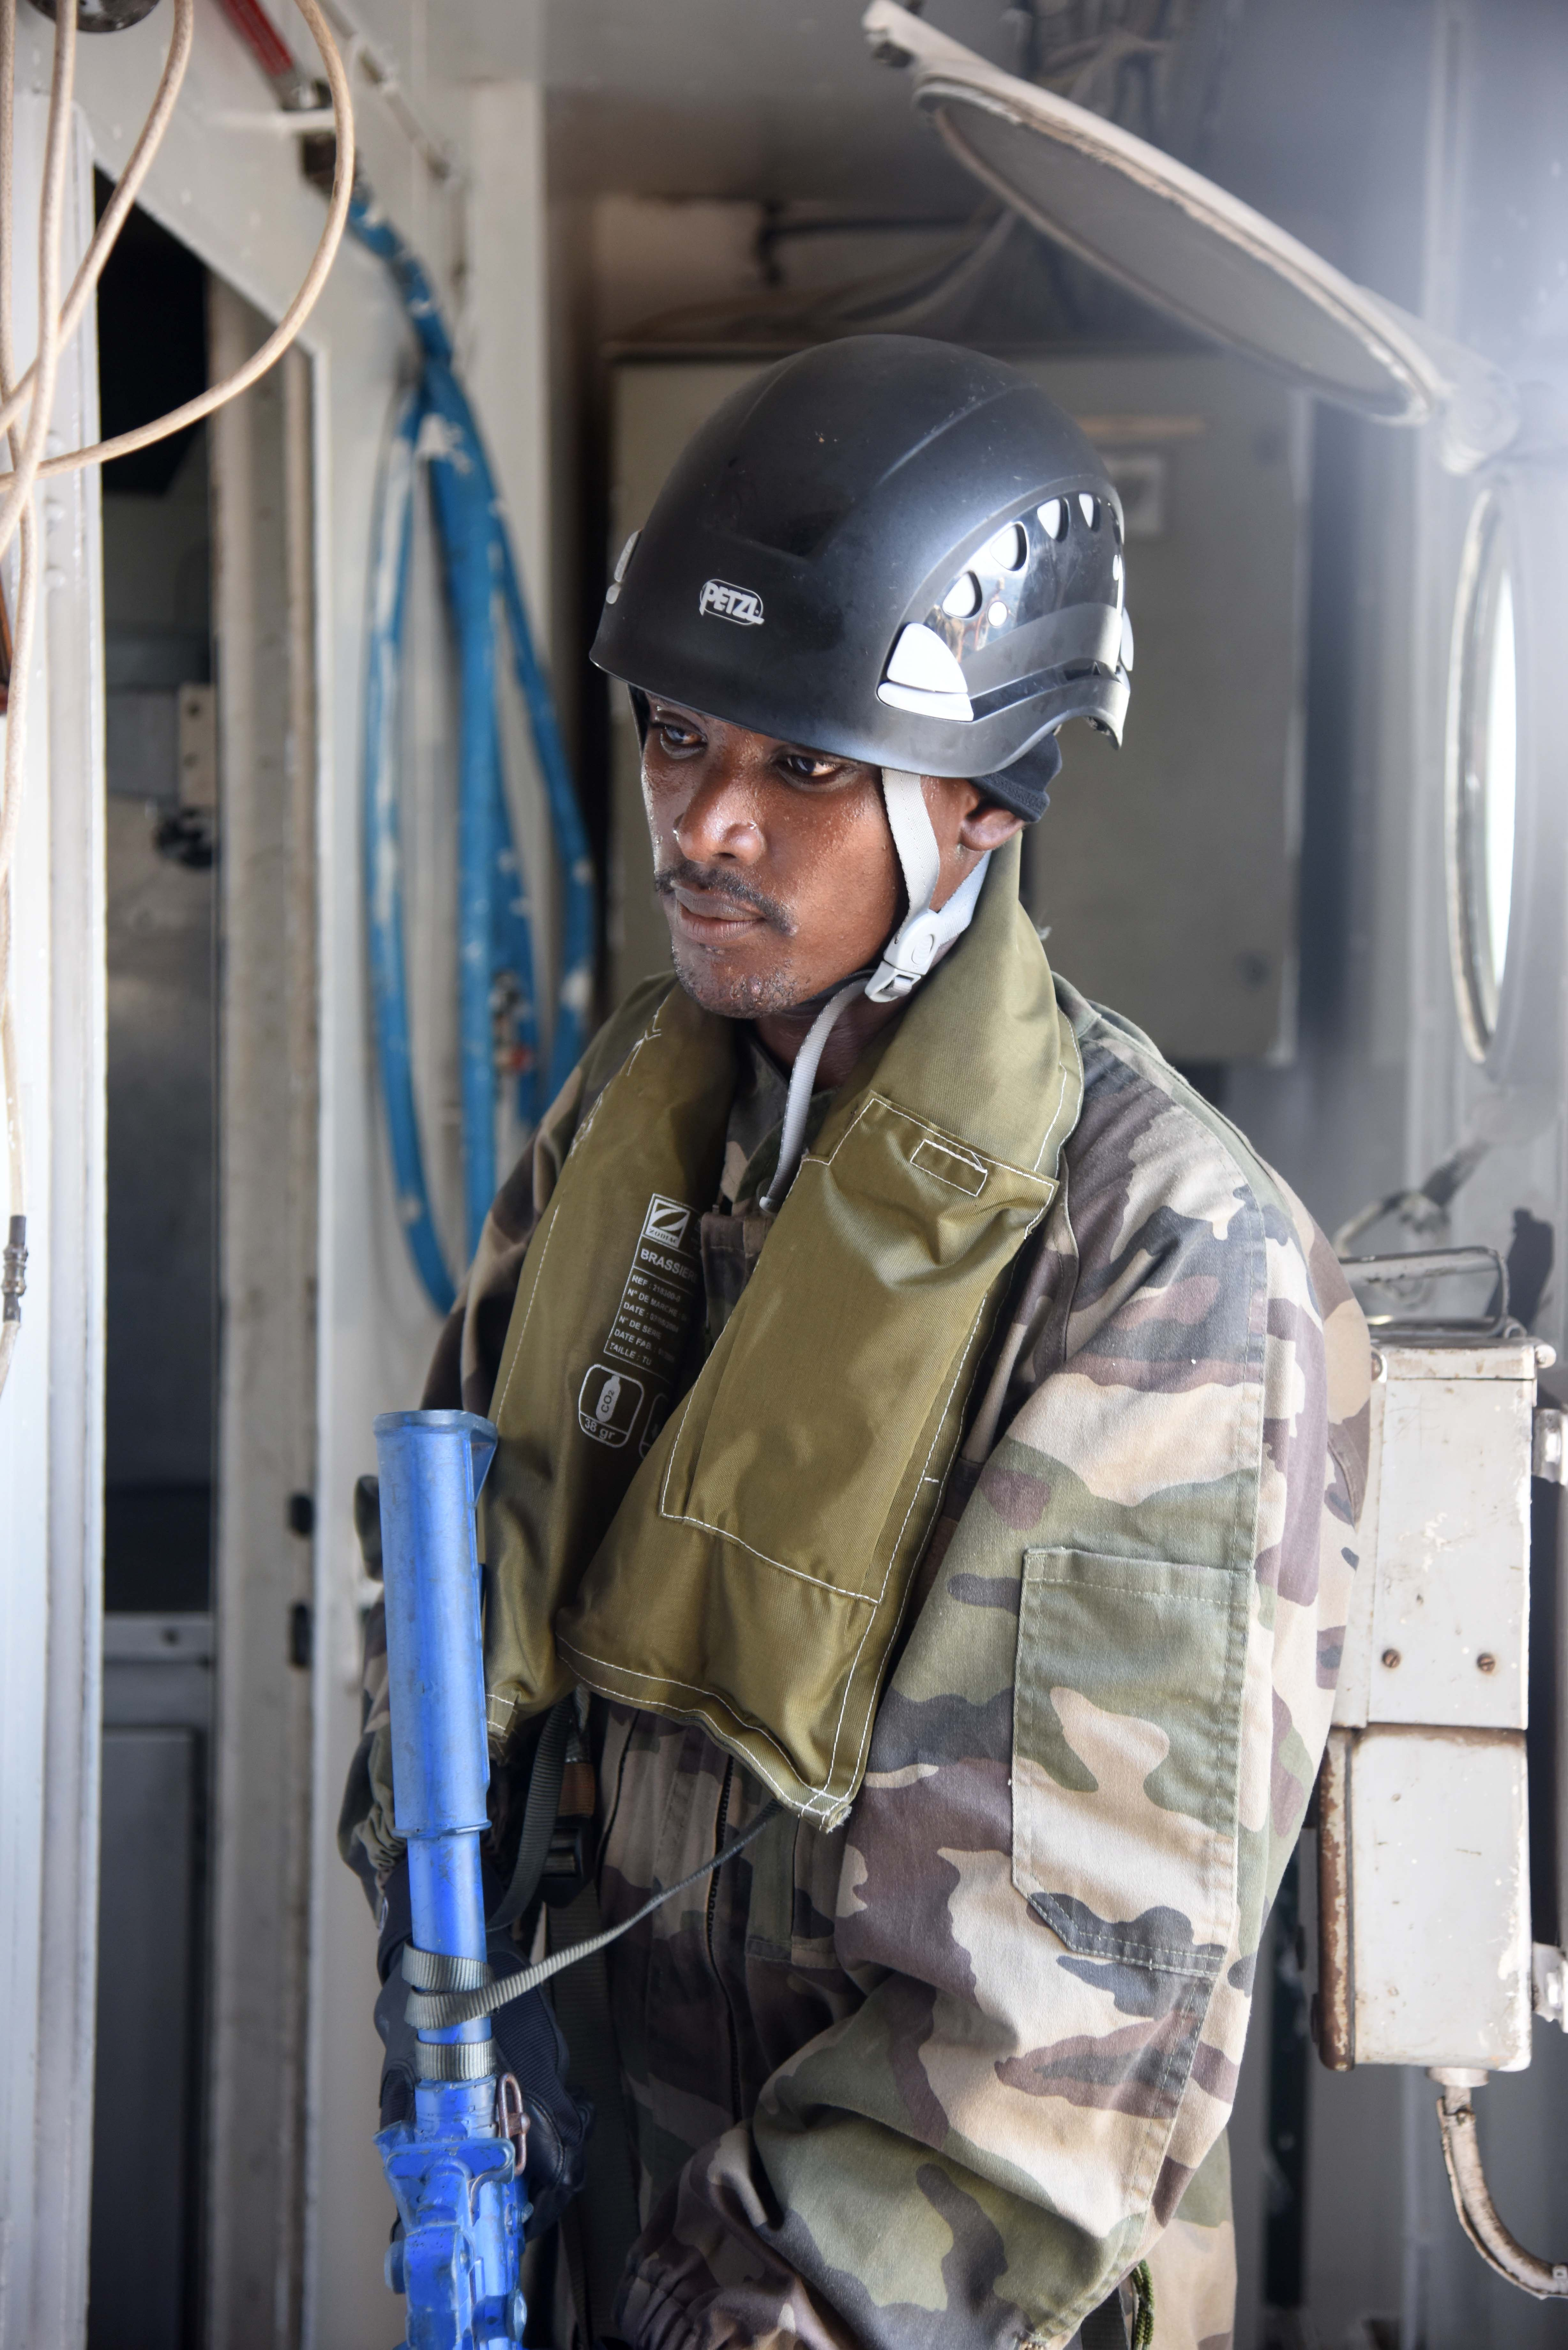 A Djibouti Marine searches a vessel suspected of illicit activity during a visit, board, search and seizure scenario as part of the 2016 Cutlass Express exercise near the Port of Djibouti, Feb. 3, 2016. The goal of the exercise was to strengthen regional cooperation and help address challenges that no single nation is capable of tackling alone.